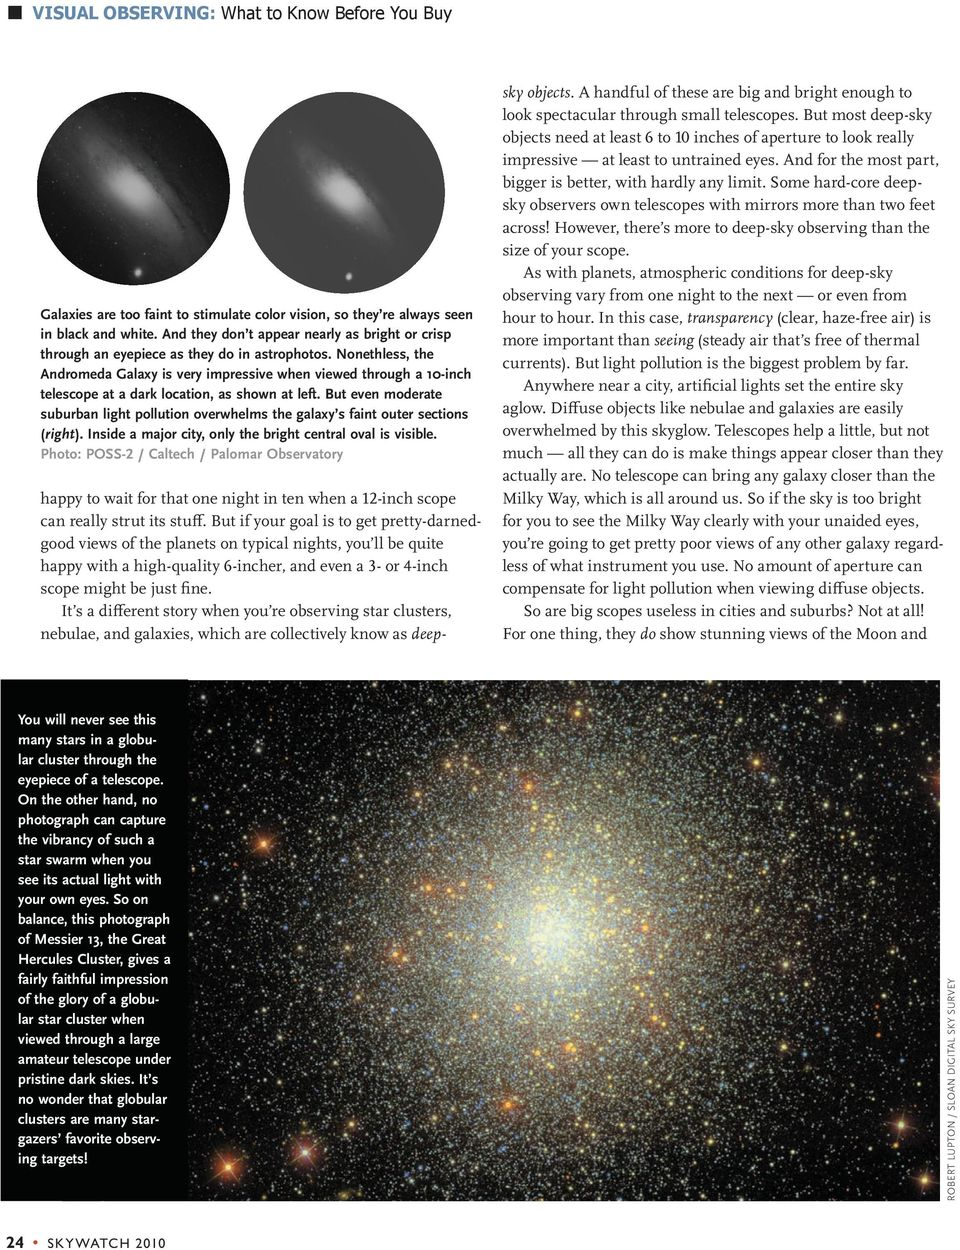 The brightest of the globular star clusters (see the picture on the opposite page) look just about the same through a 10-inch scope in a city as they do through a 4-incher at a dark site namely,